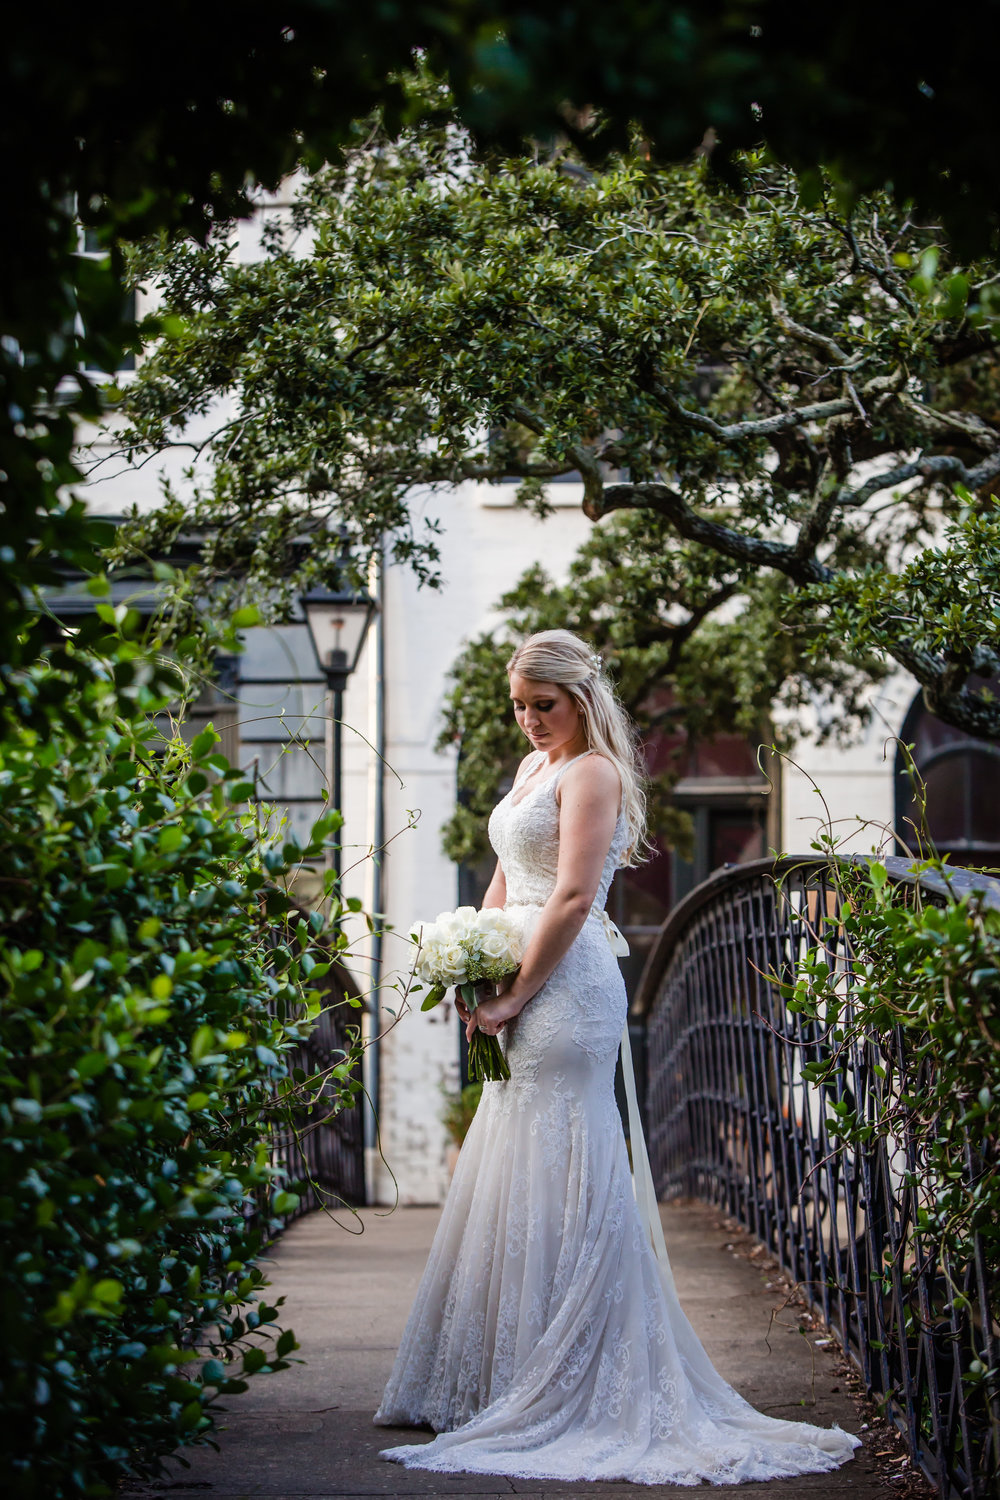 VICTORIA'S ROMANTIC DOWNTOWN SAVANNAH WEDDING